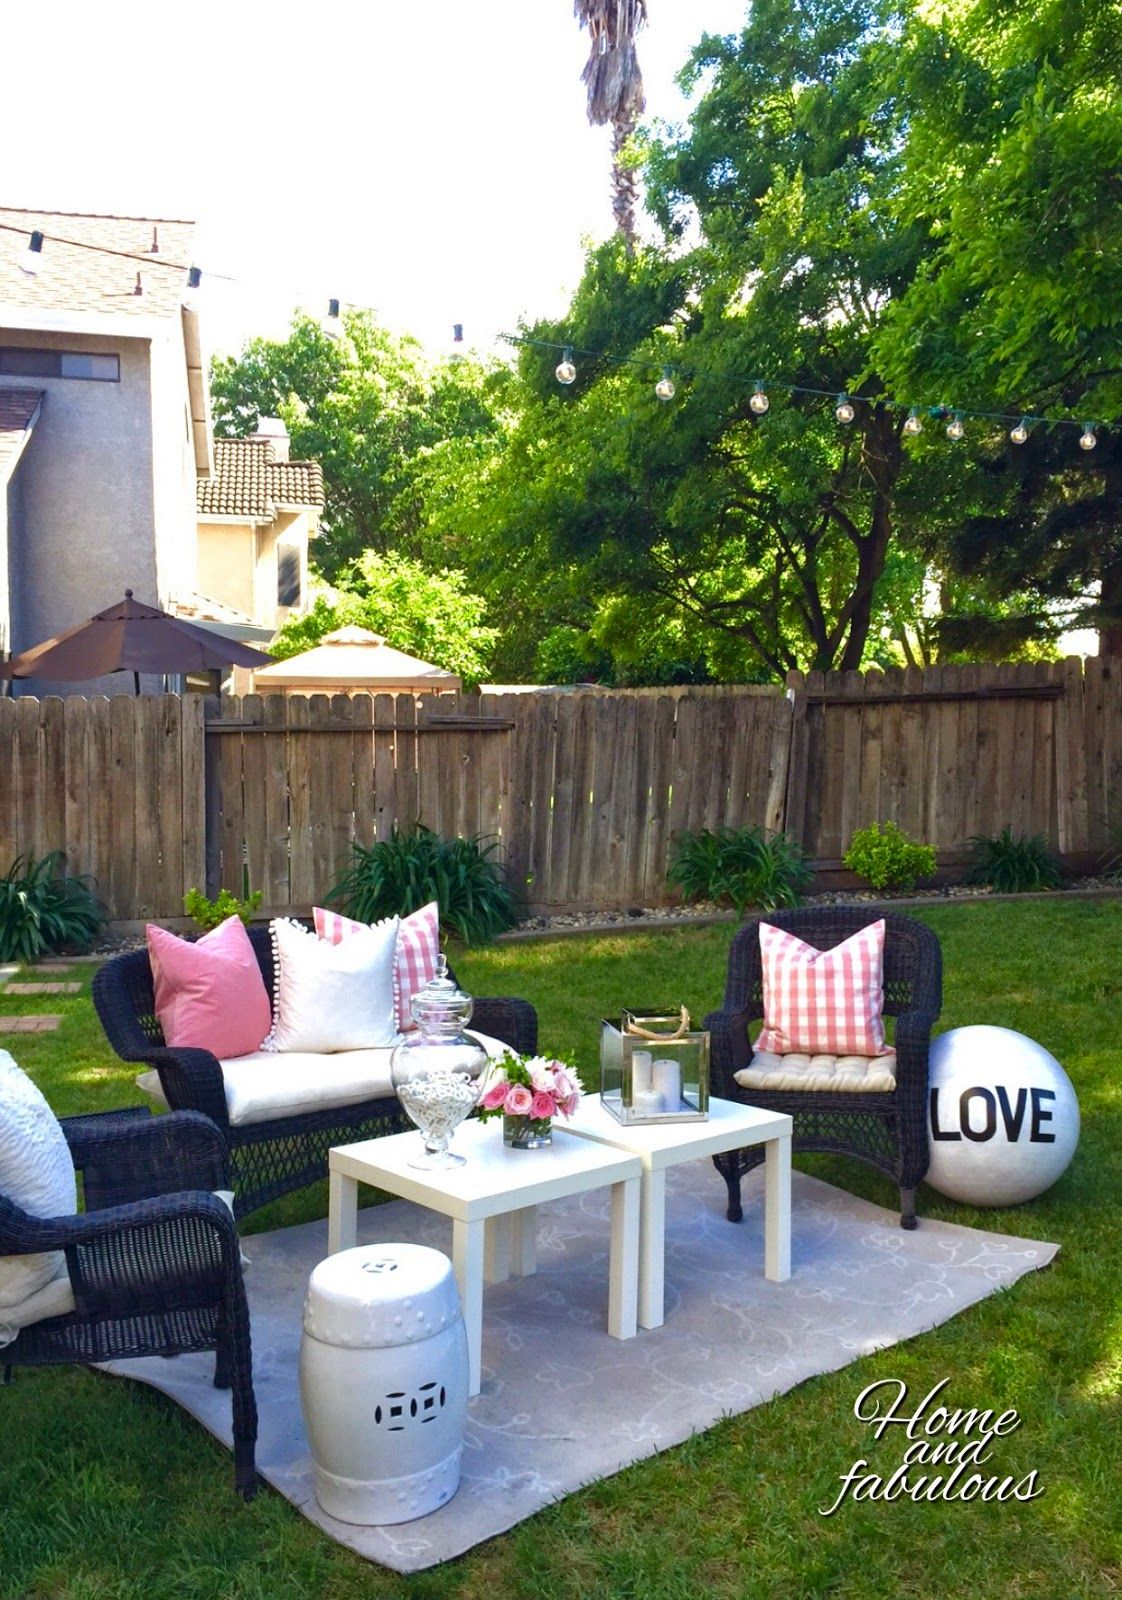 Garden stool and accessories from HomeGoods make this patio more